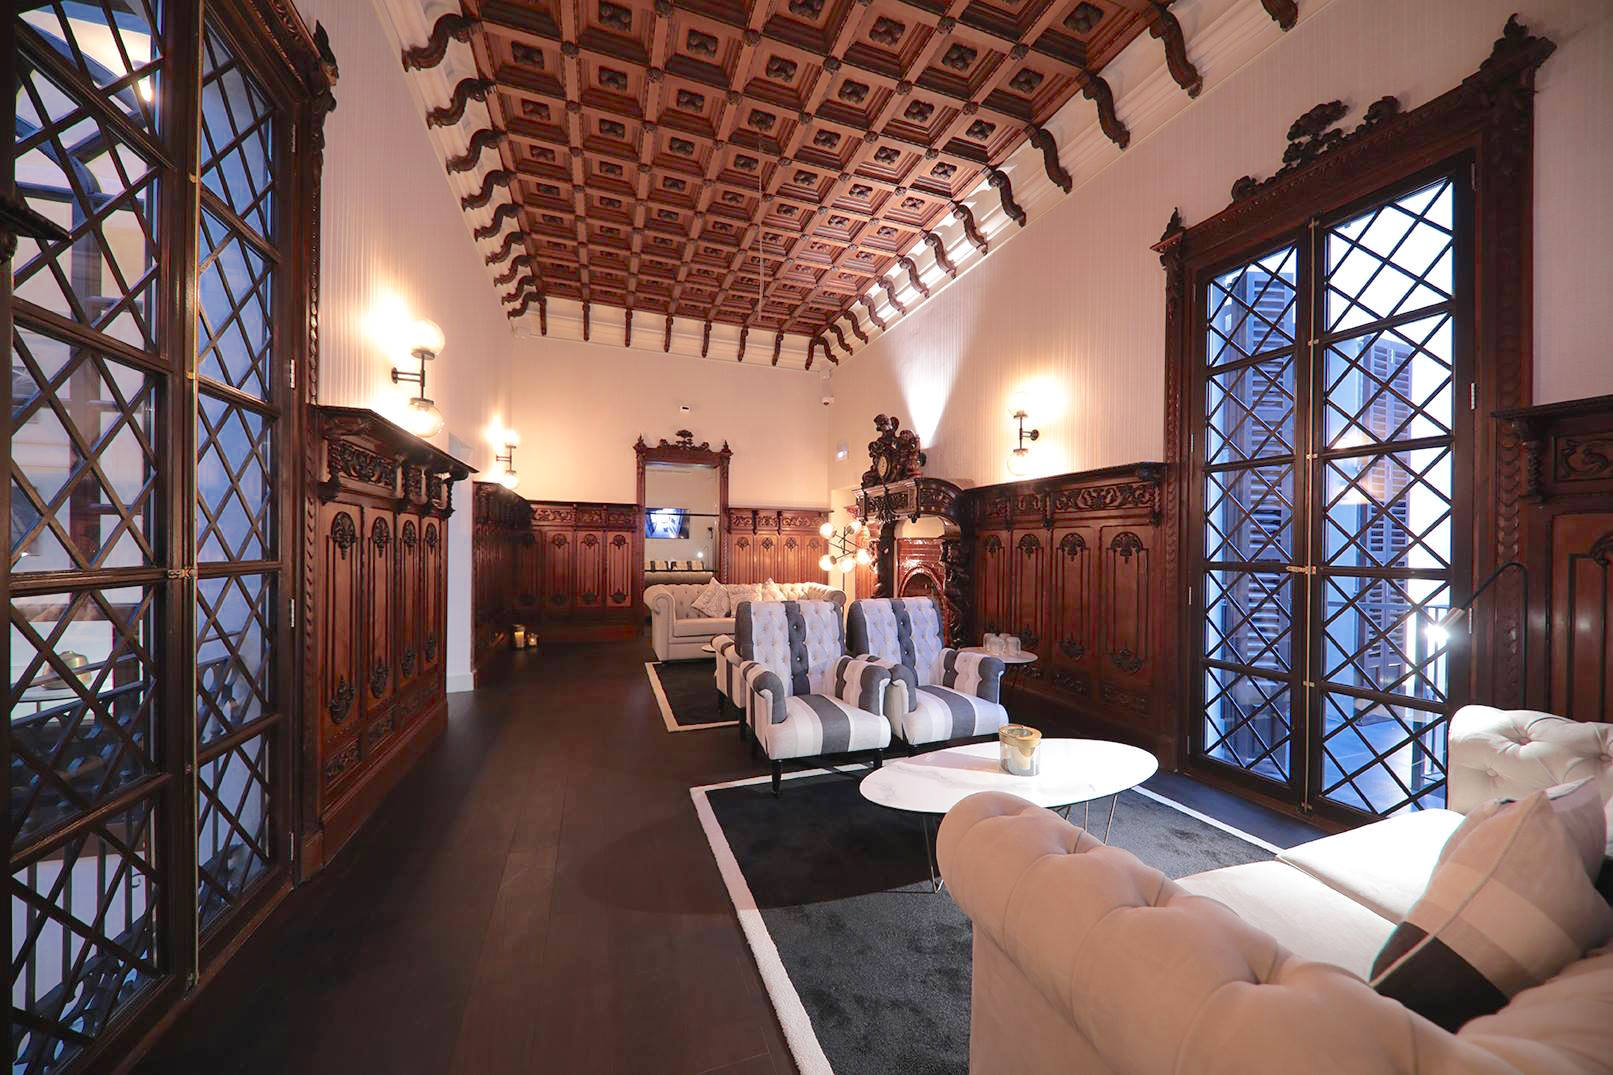 Summum Prime Boutique Hotel - Palma - The Library holds the integrity of the building